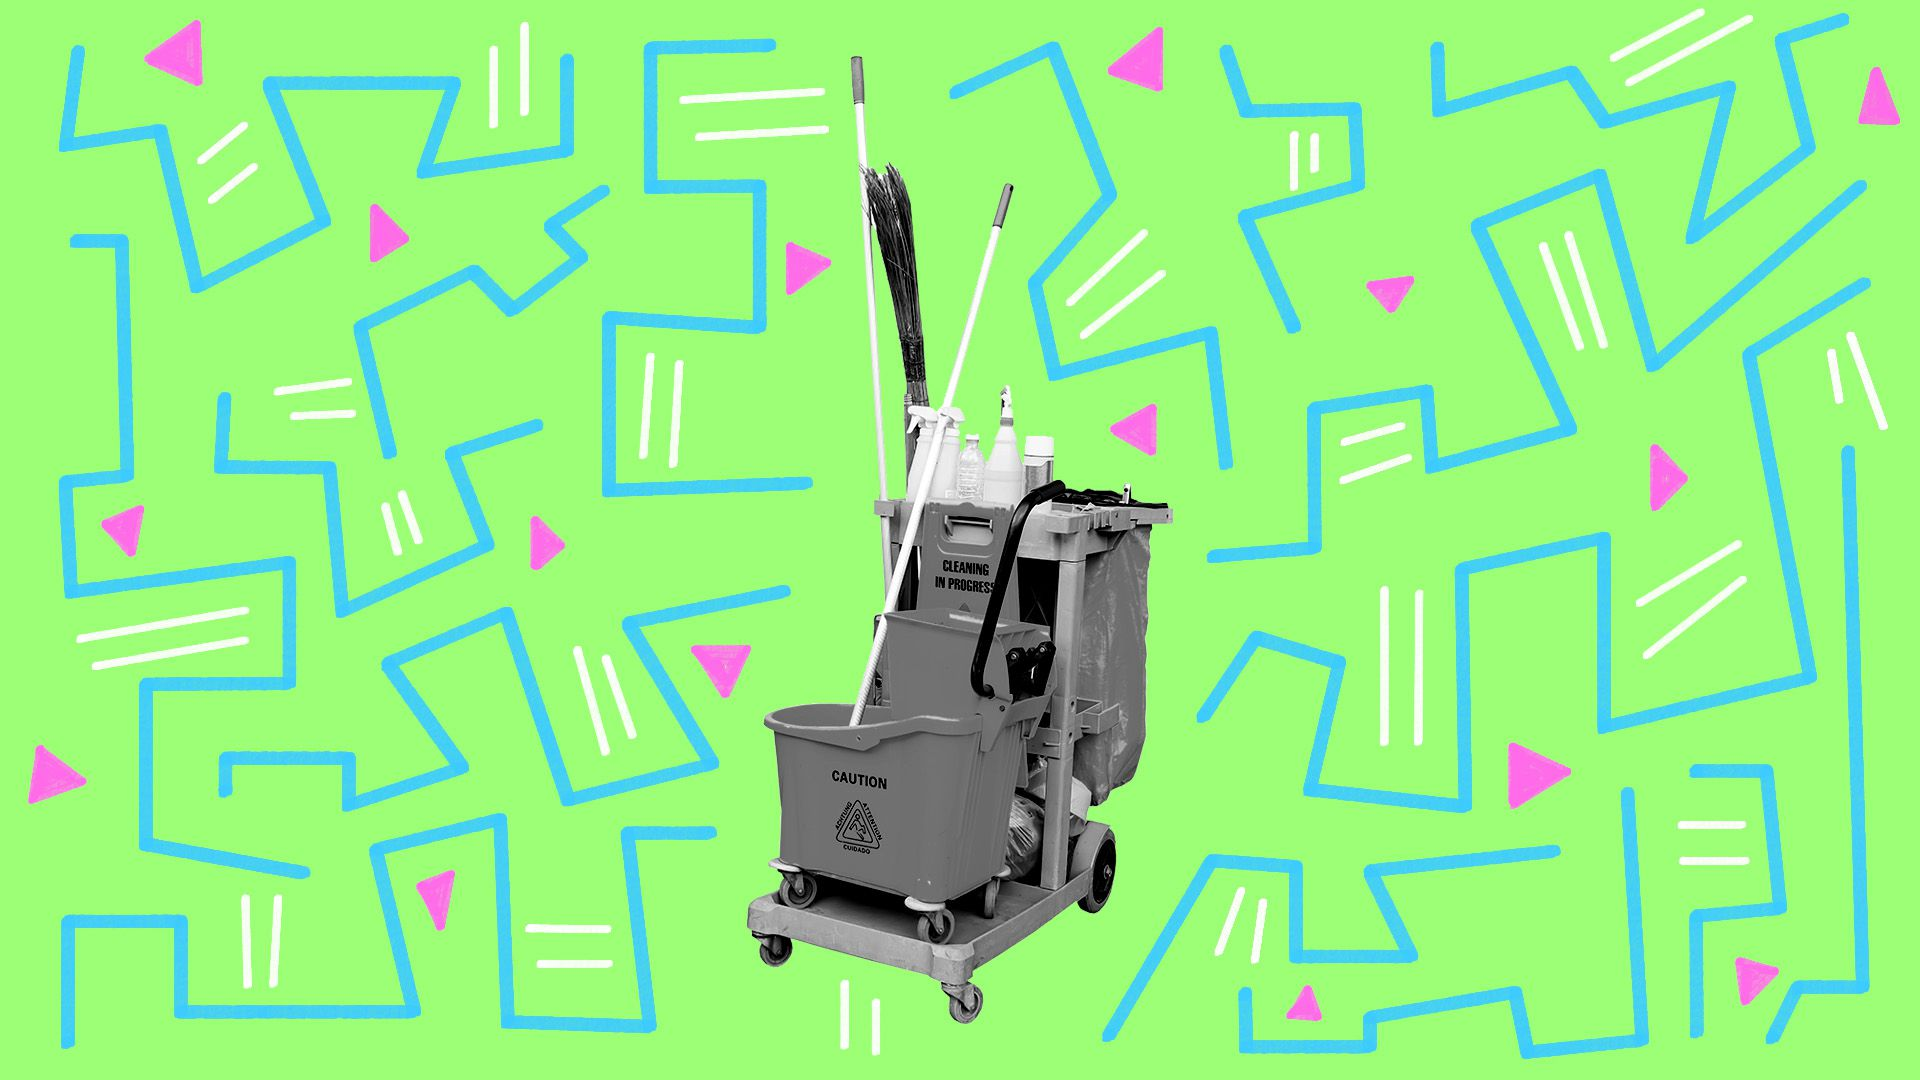 Help wanted: Digital janitor